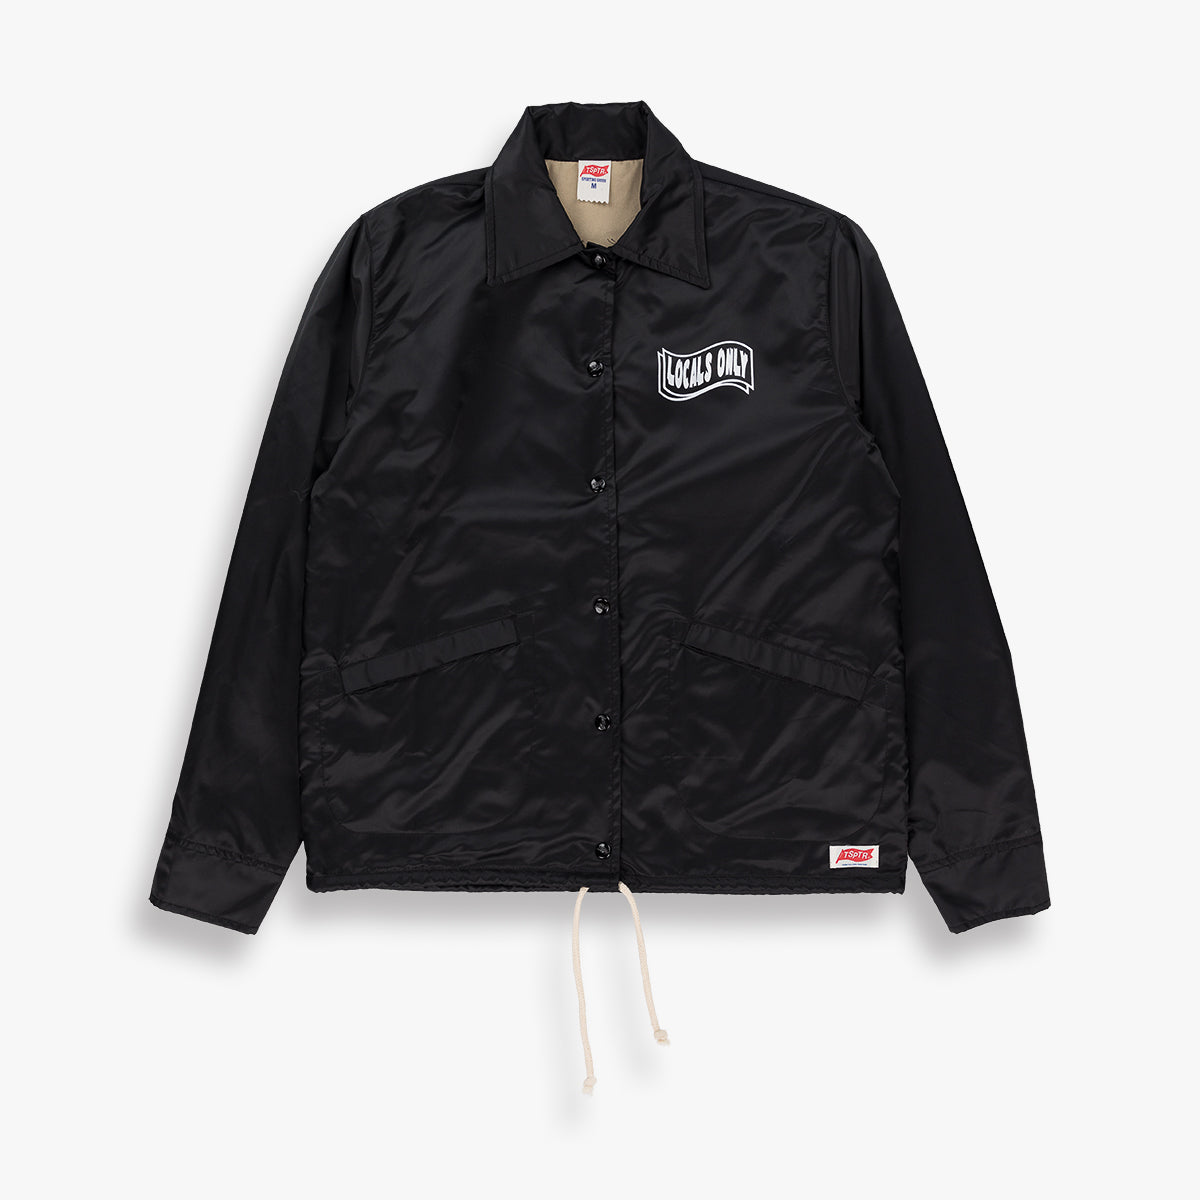 Locals Only Coach Jacket